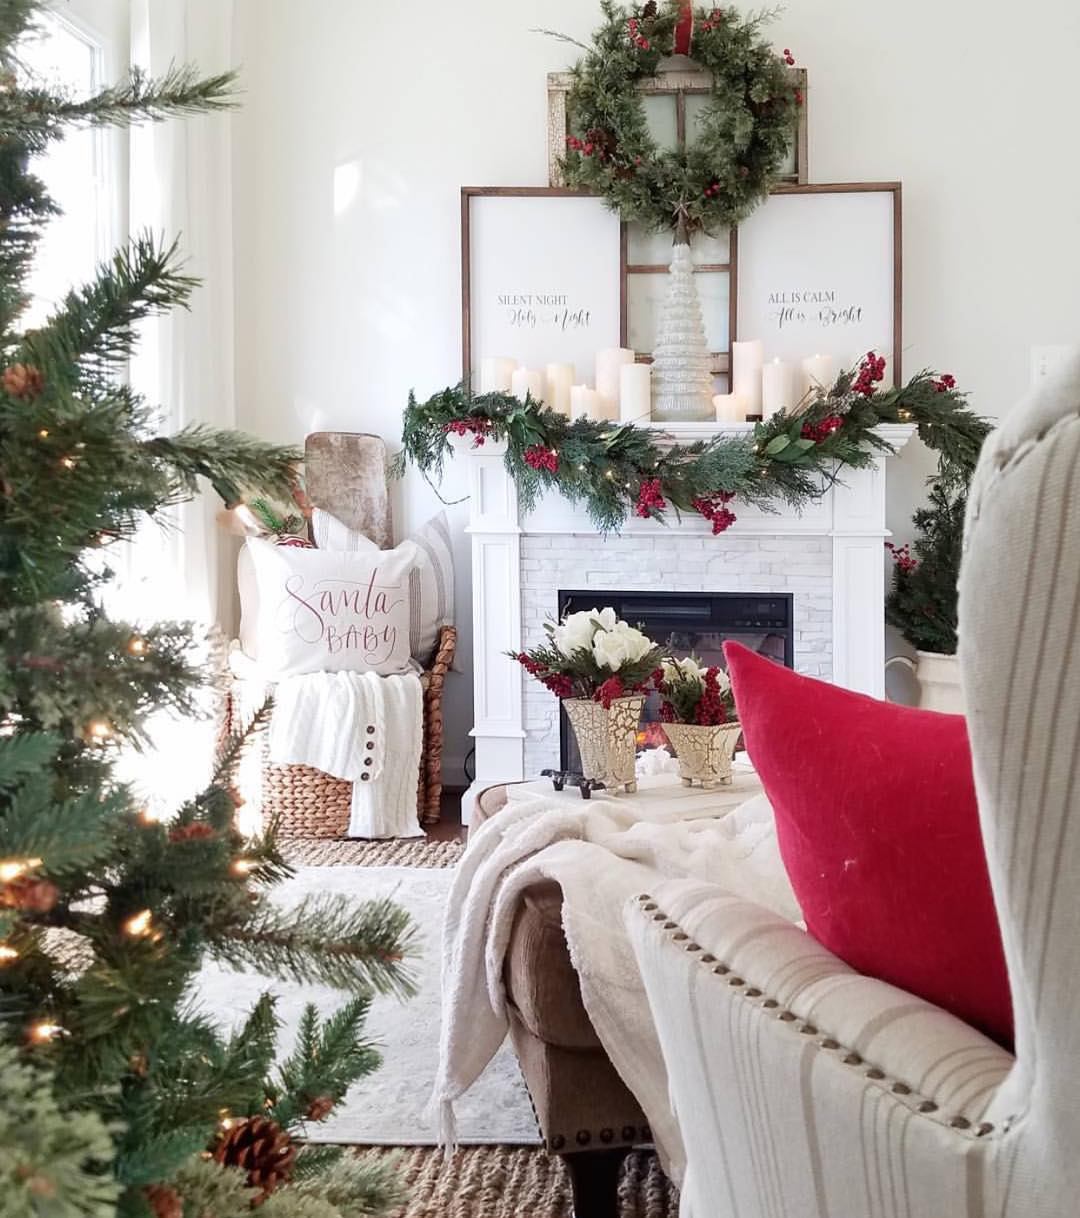 Traditional Christmas | Simply Inspired Design Co.